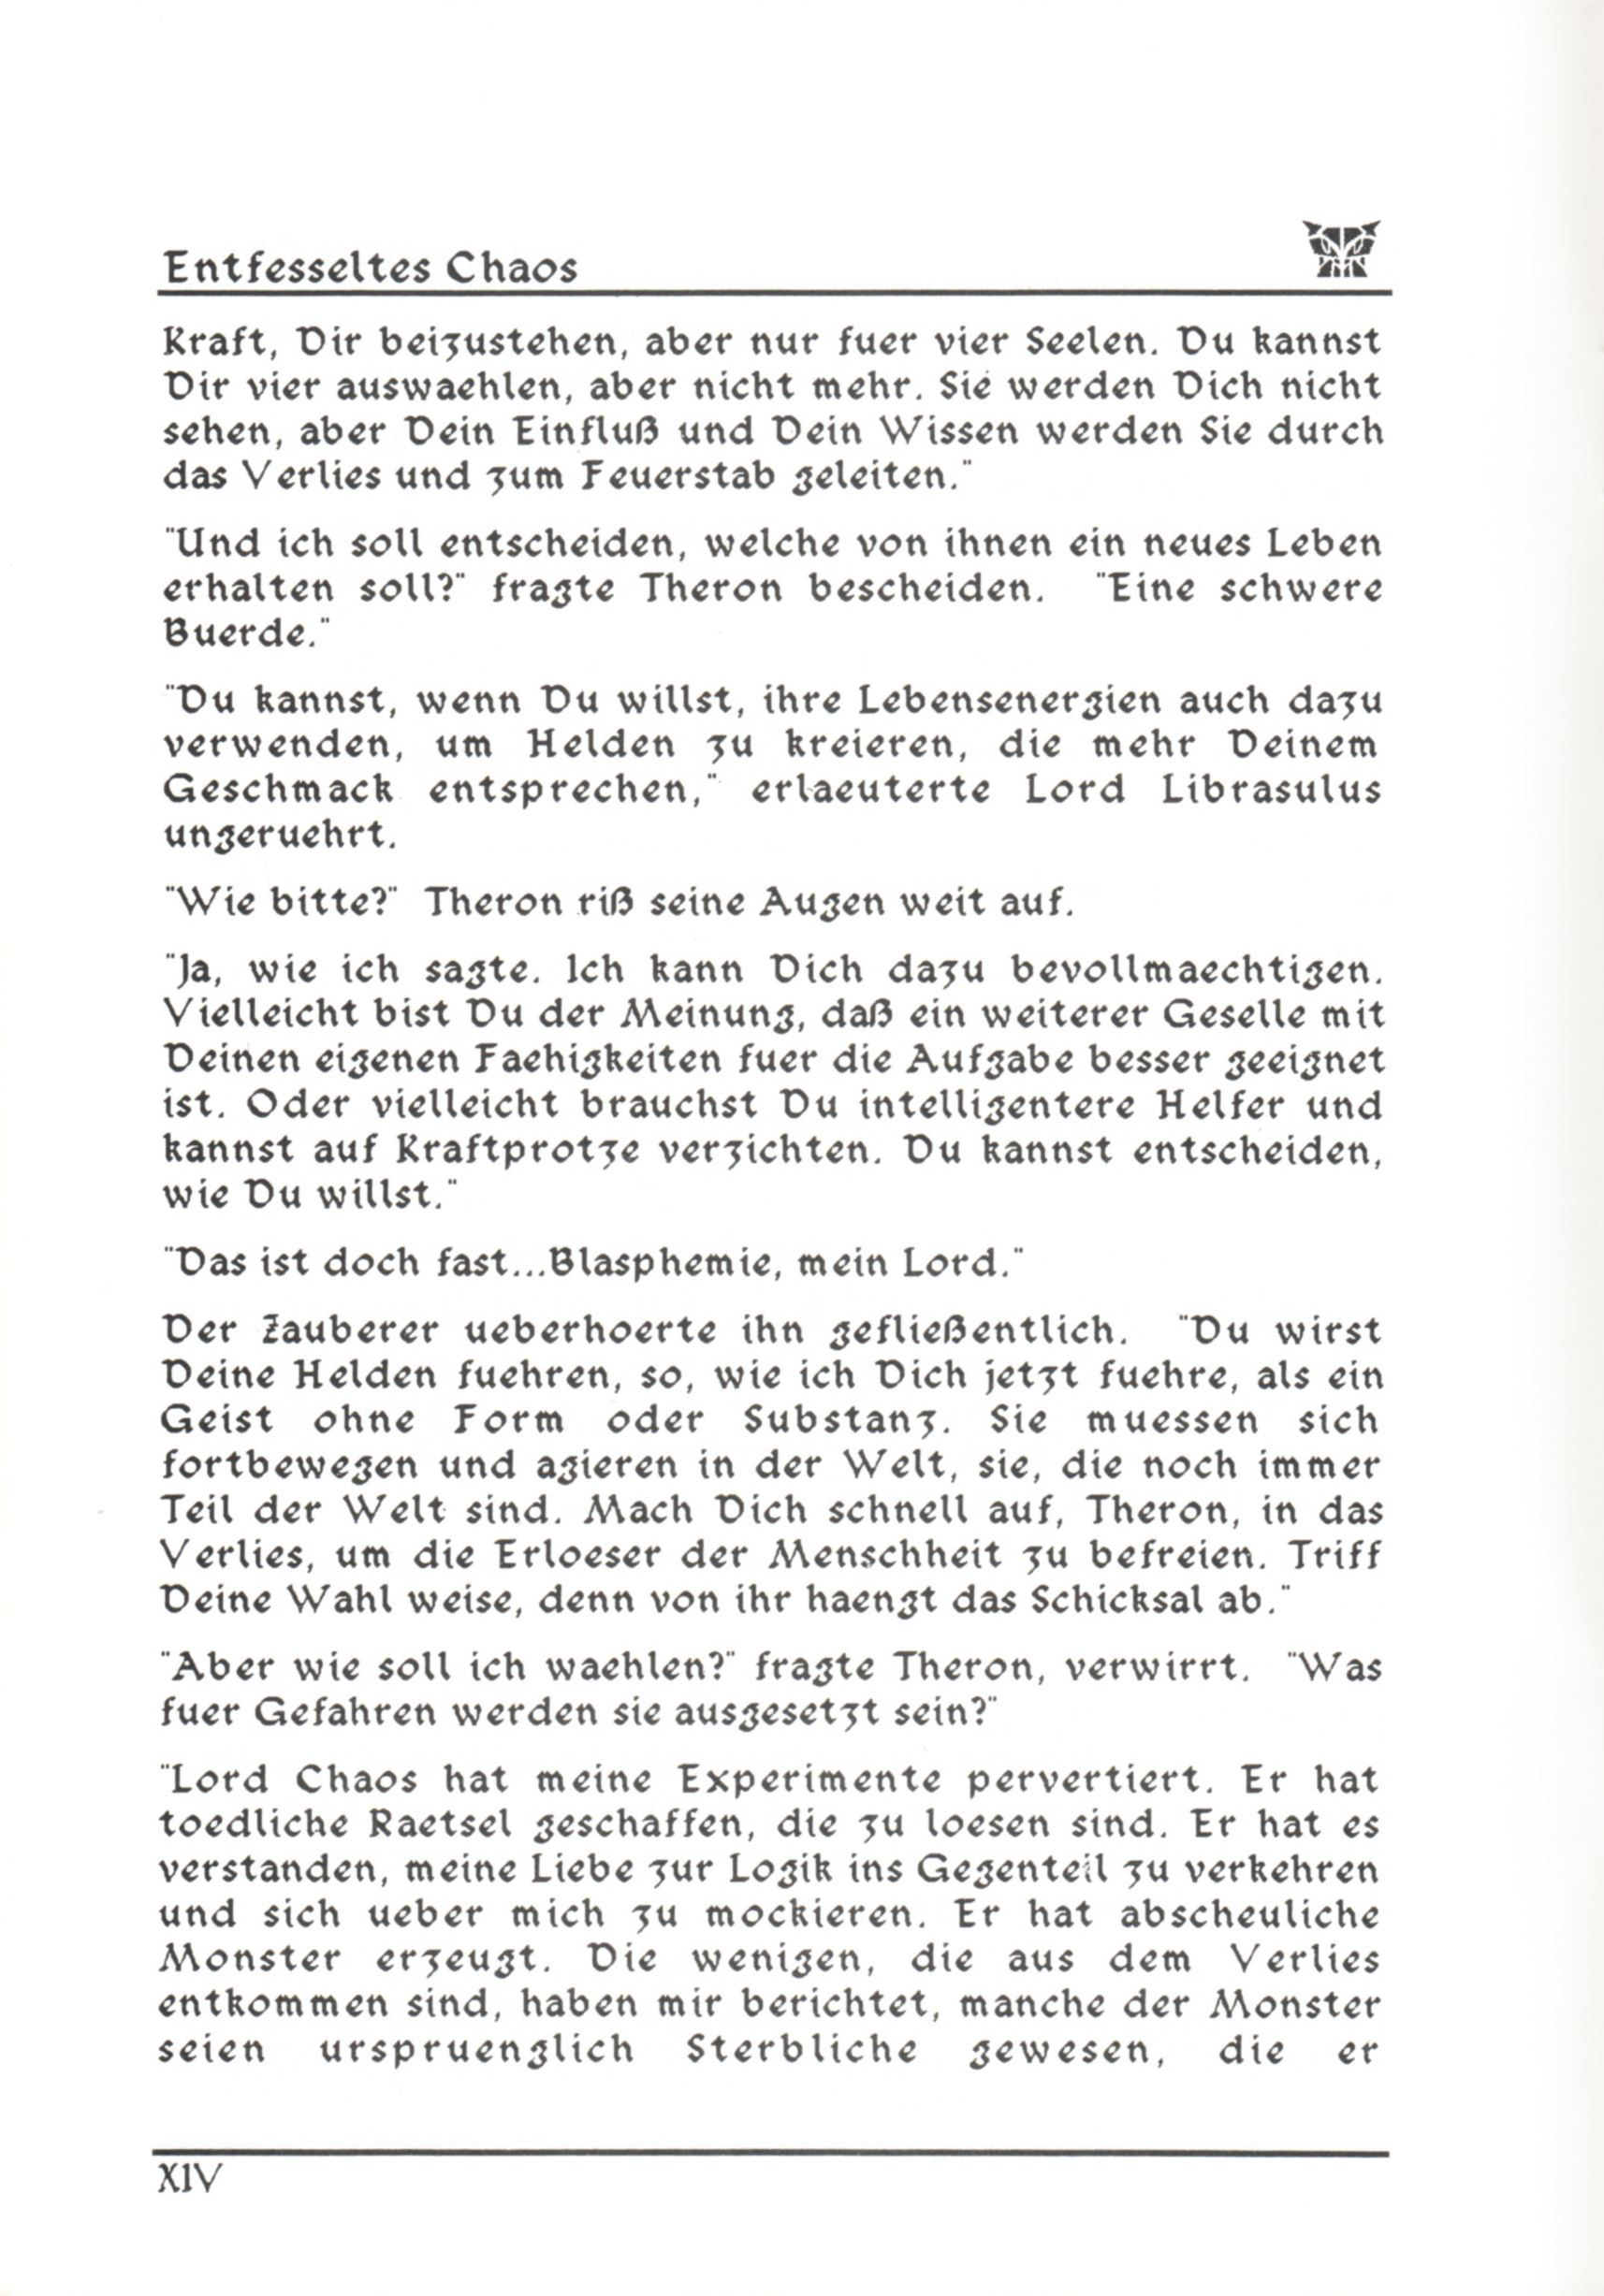 Game - Dungeon Master - DE - PC - Psygnosis - Manual - Page 018 - Scan